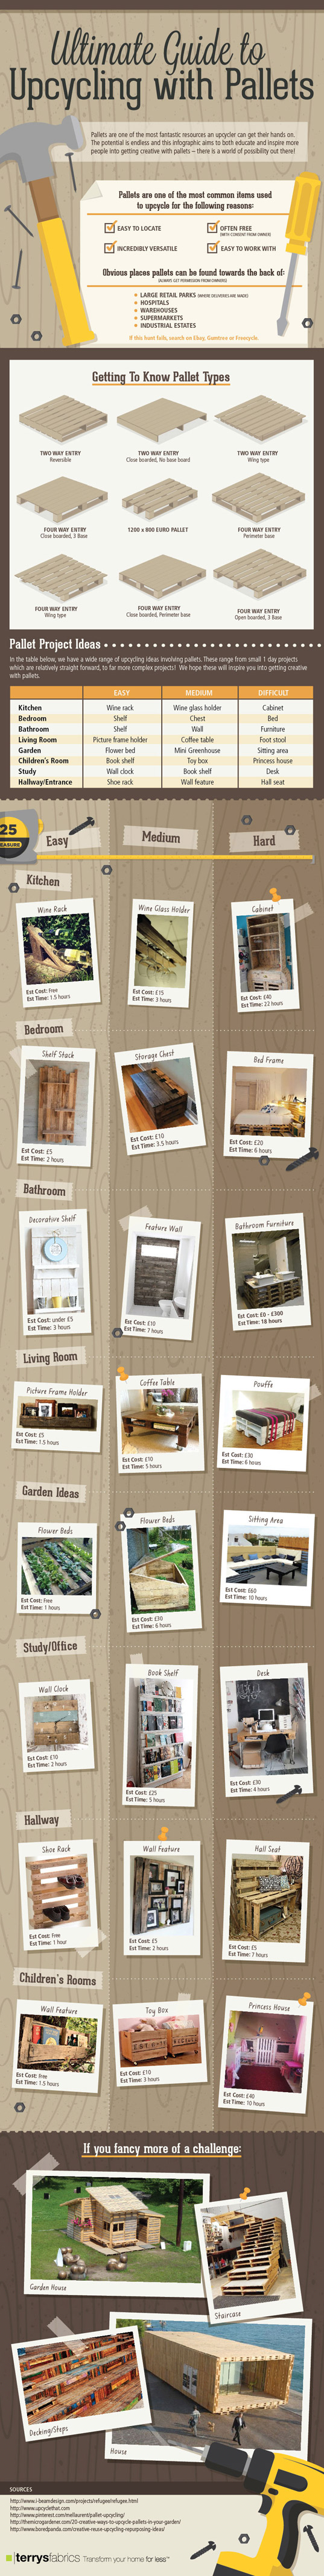 Pallets, recycled pallet, shipping pallet, infographic, palletecture, recycled pallet furniture, recycled materials, sustainable design, green design, upcycled pallet, upcycling, recycling, green decor, green interiors